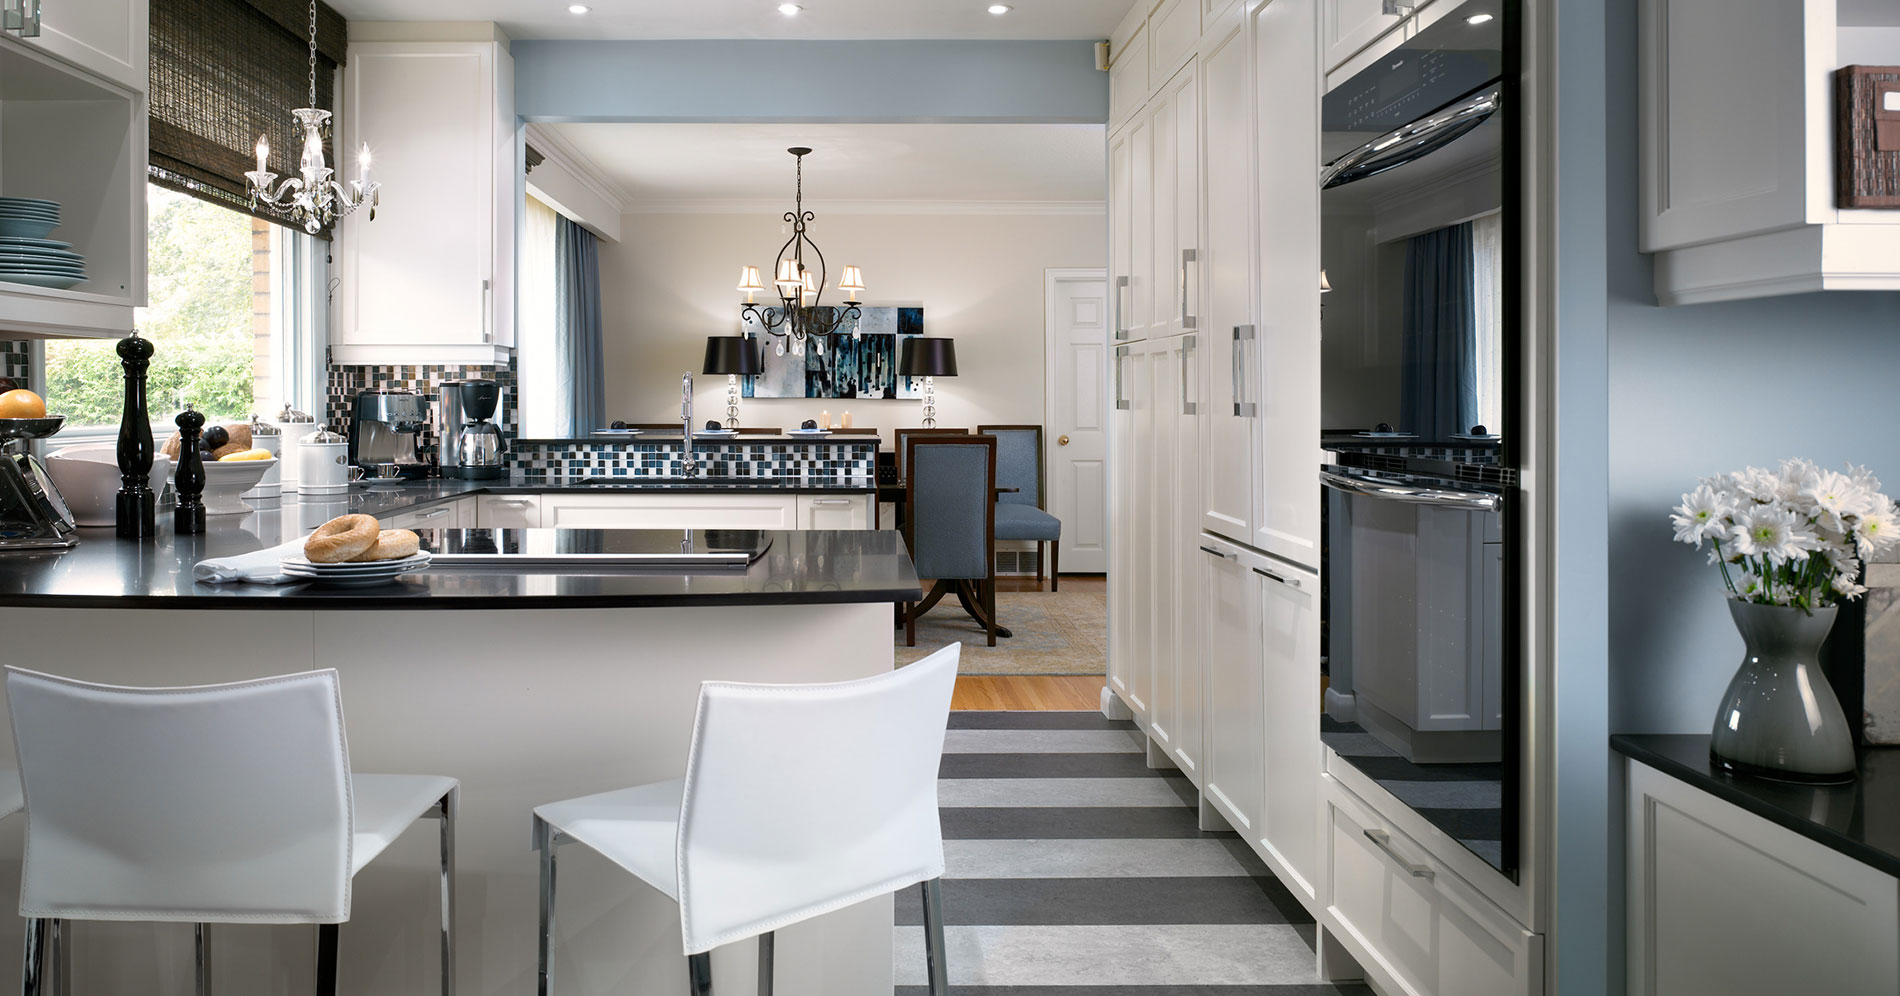 Best designs for kitchens laundry and fireplaces kustom for Kustom kitchen designs